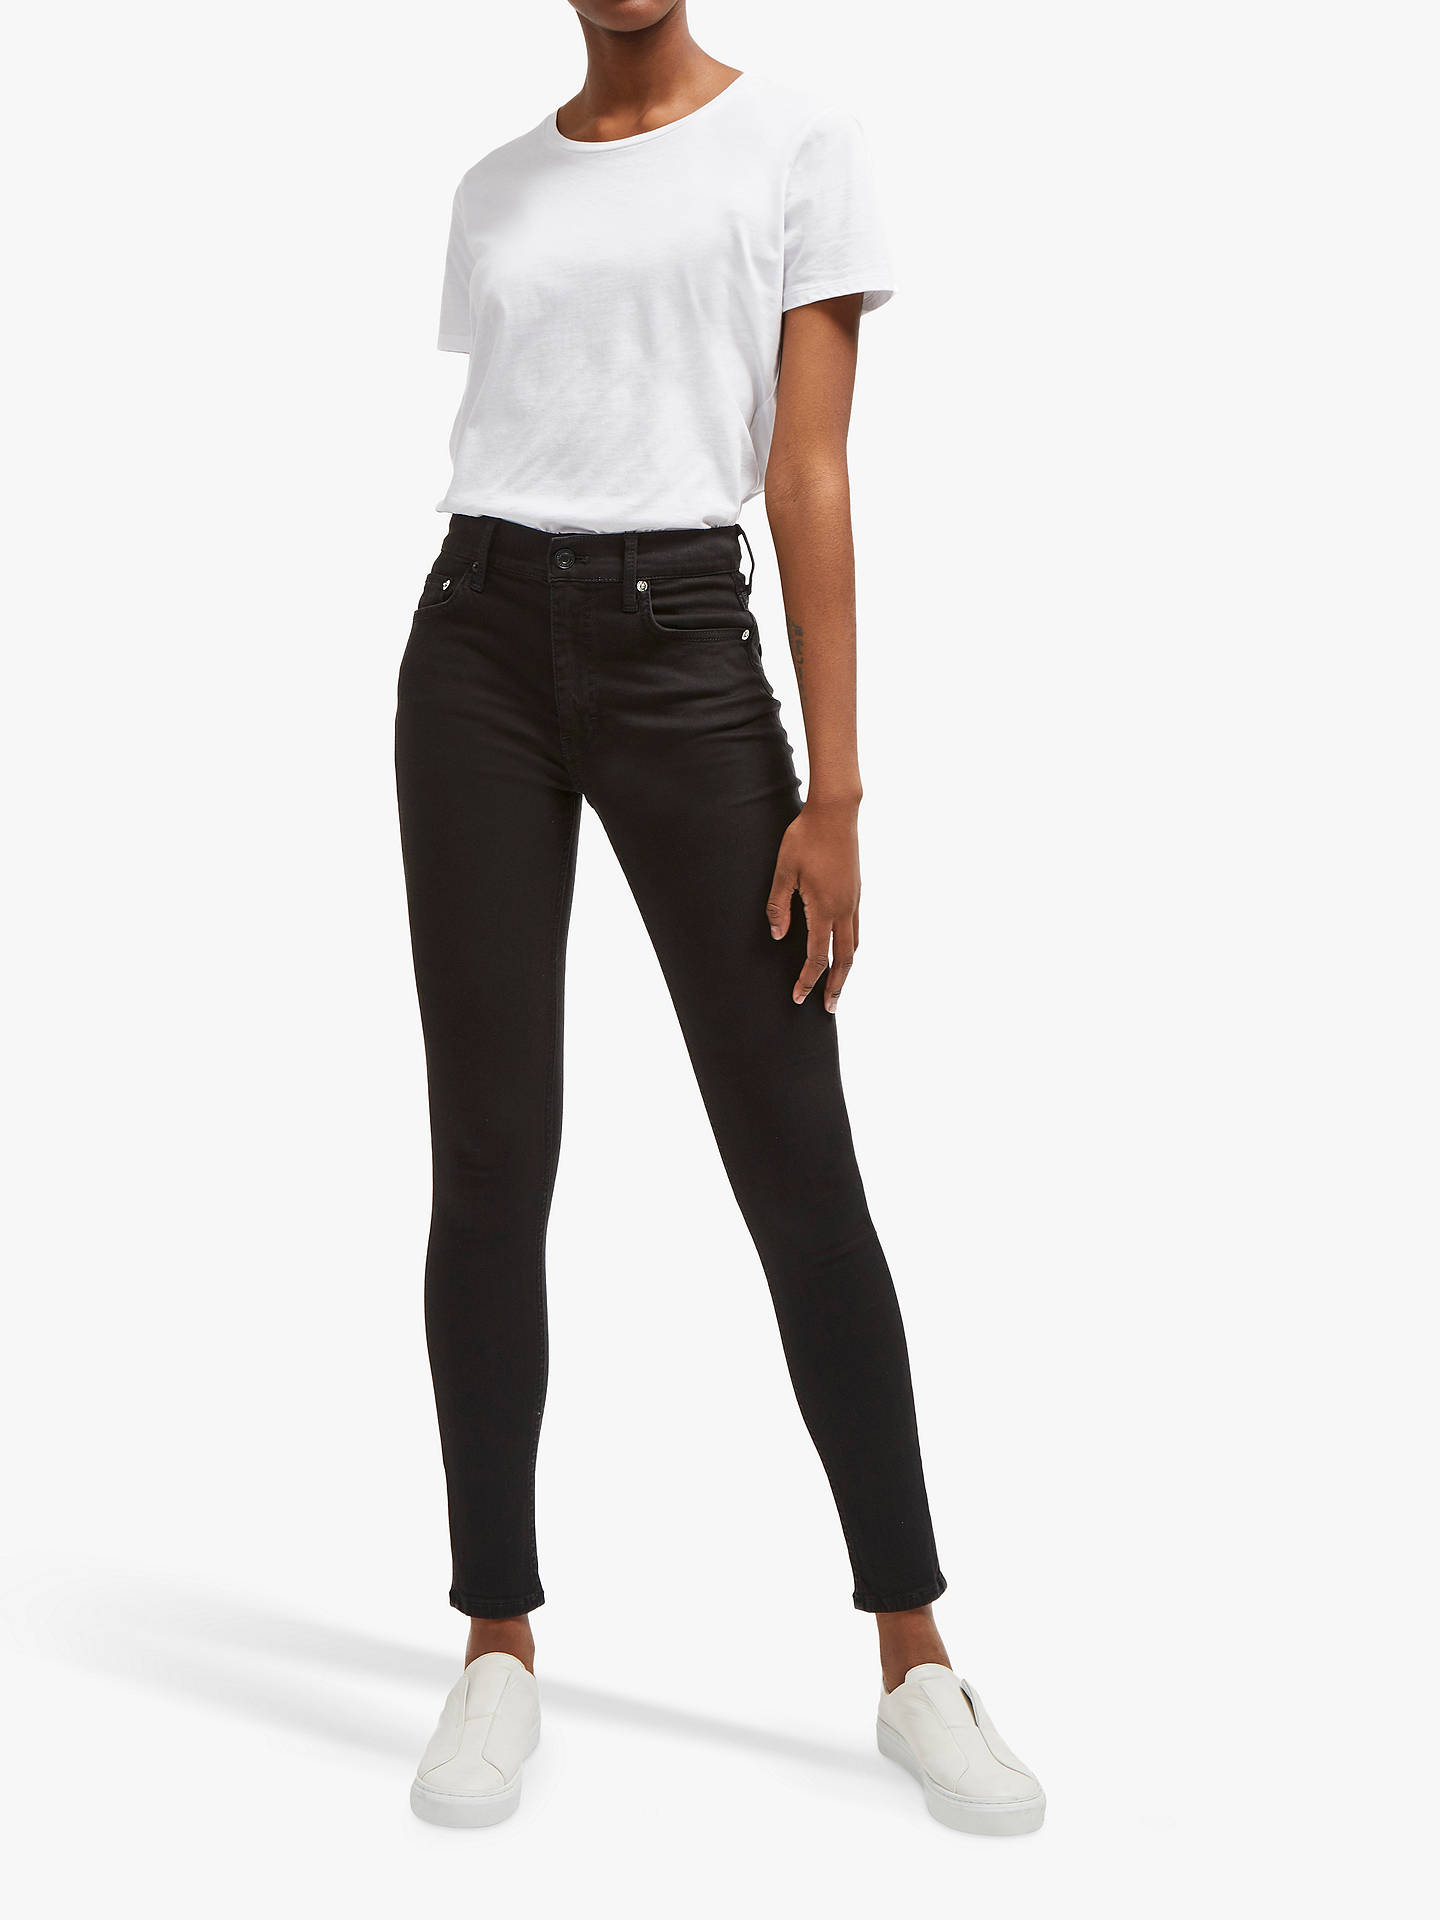 65dec44d2cb Buy French Connection Mid Rise Skinny Rebound Jeans, Black, 14 Online at  johnlewis.